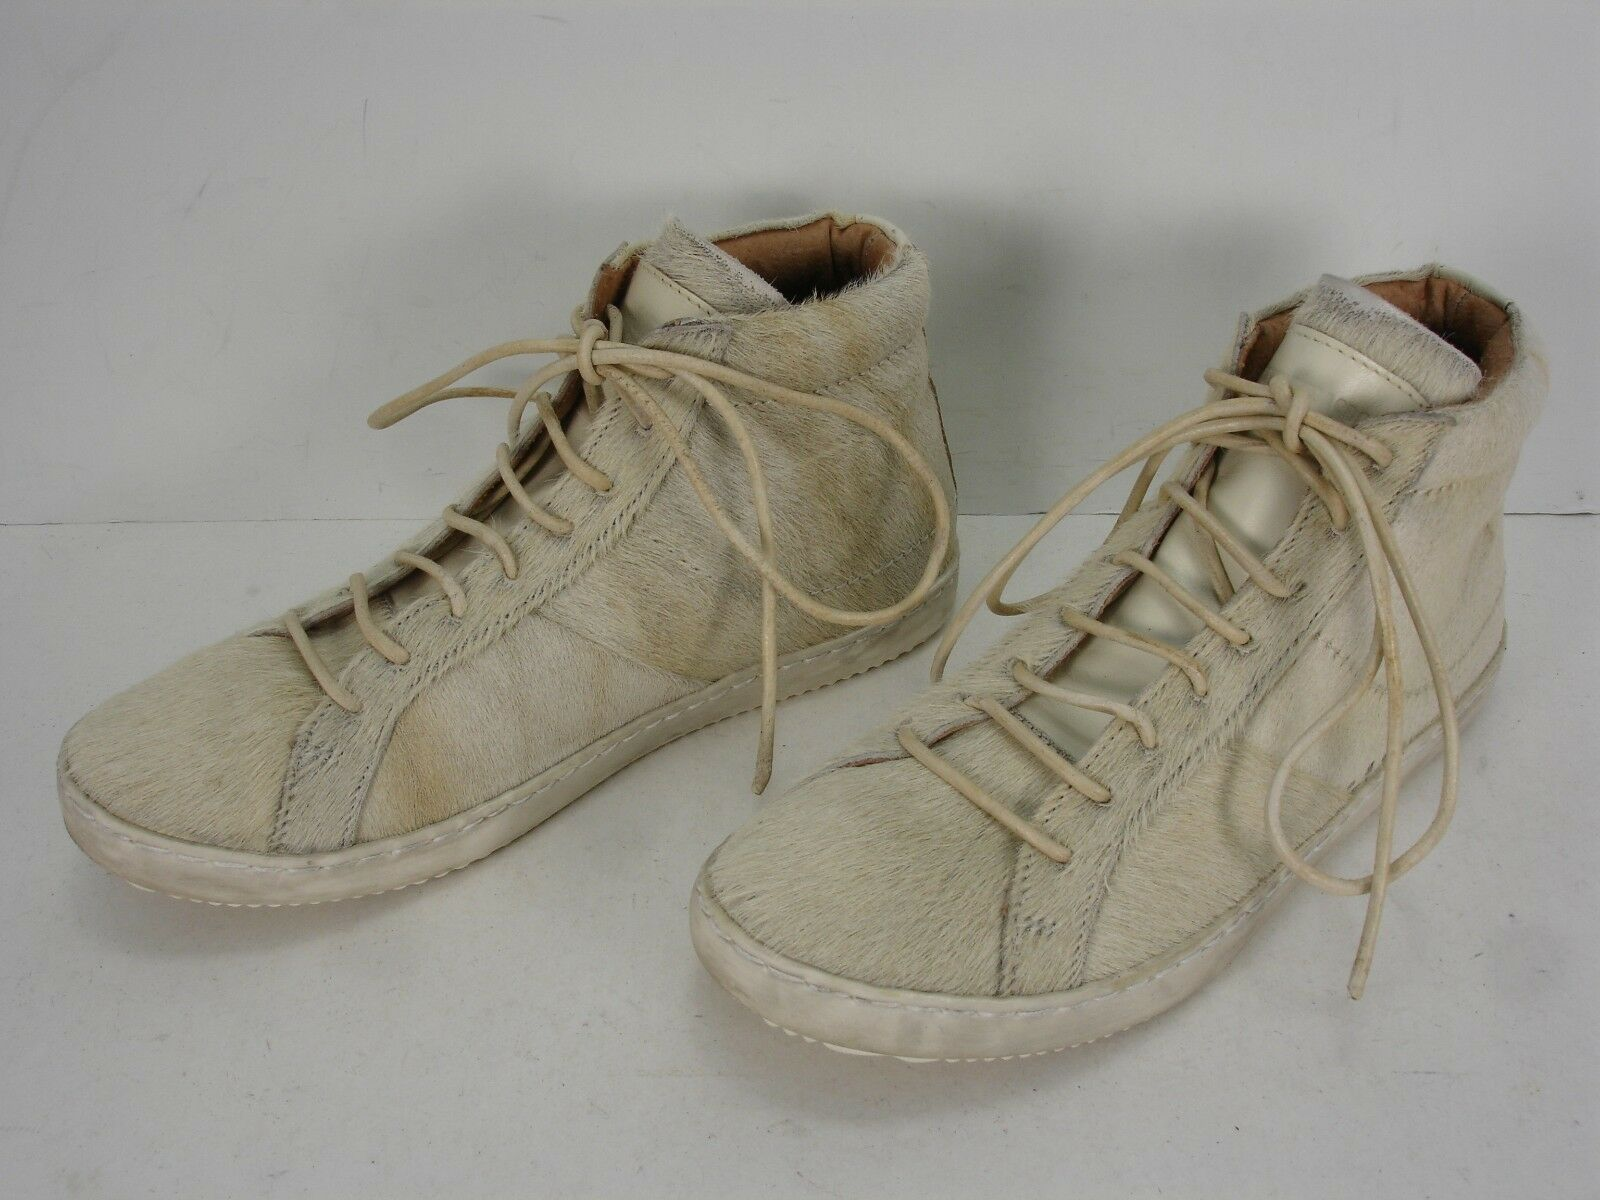 ONE X ONE TEASPOON BEIGE PONY HAIR LACE UP MID TOP SNEAKERS SHOES WOMEN'S 40